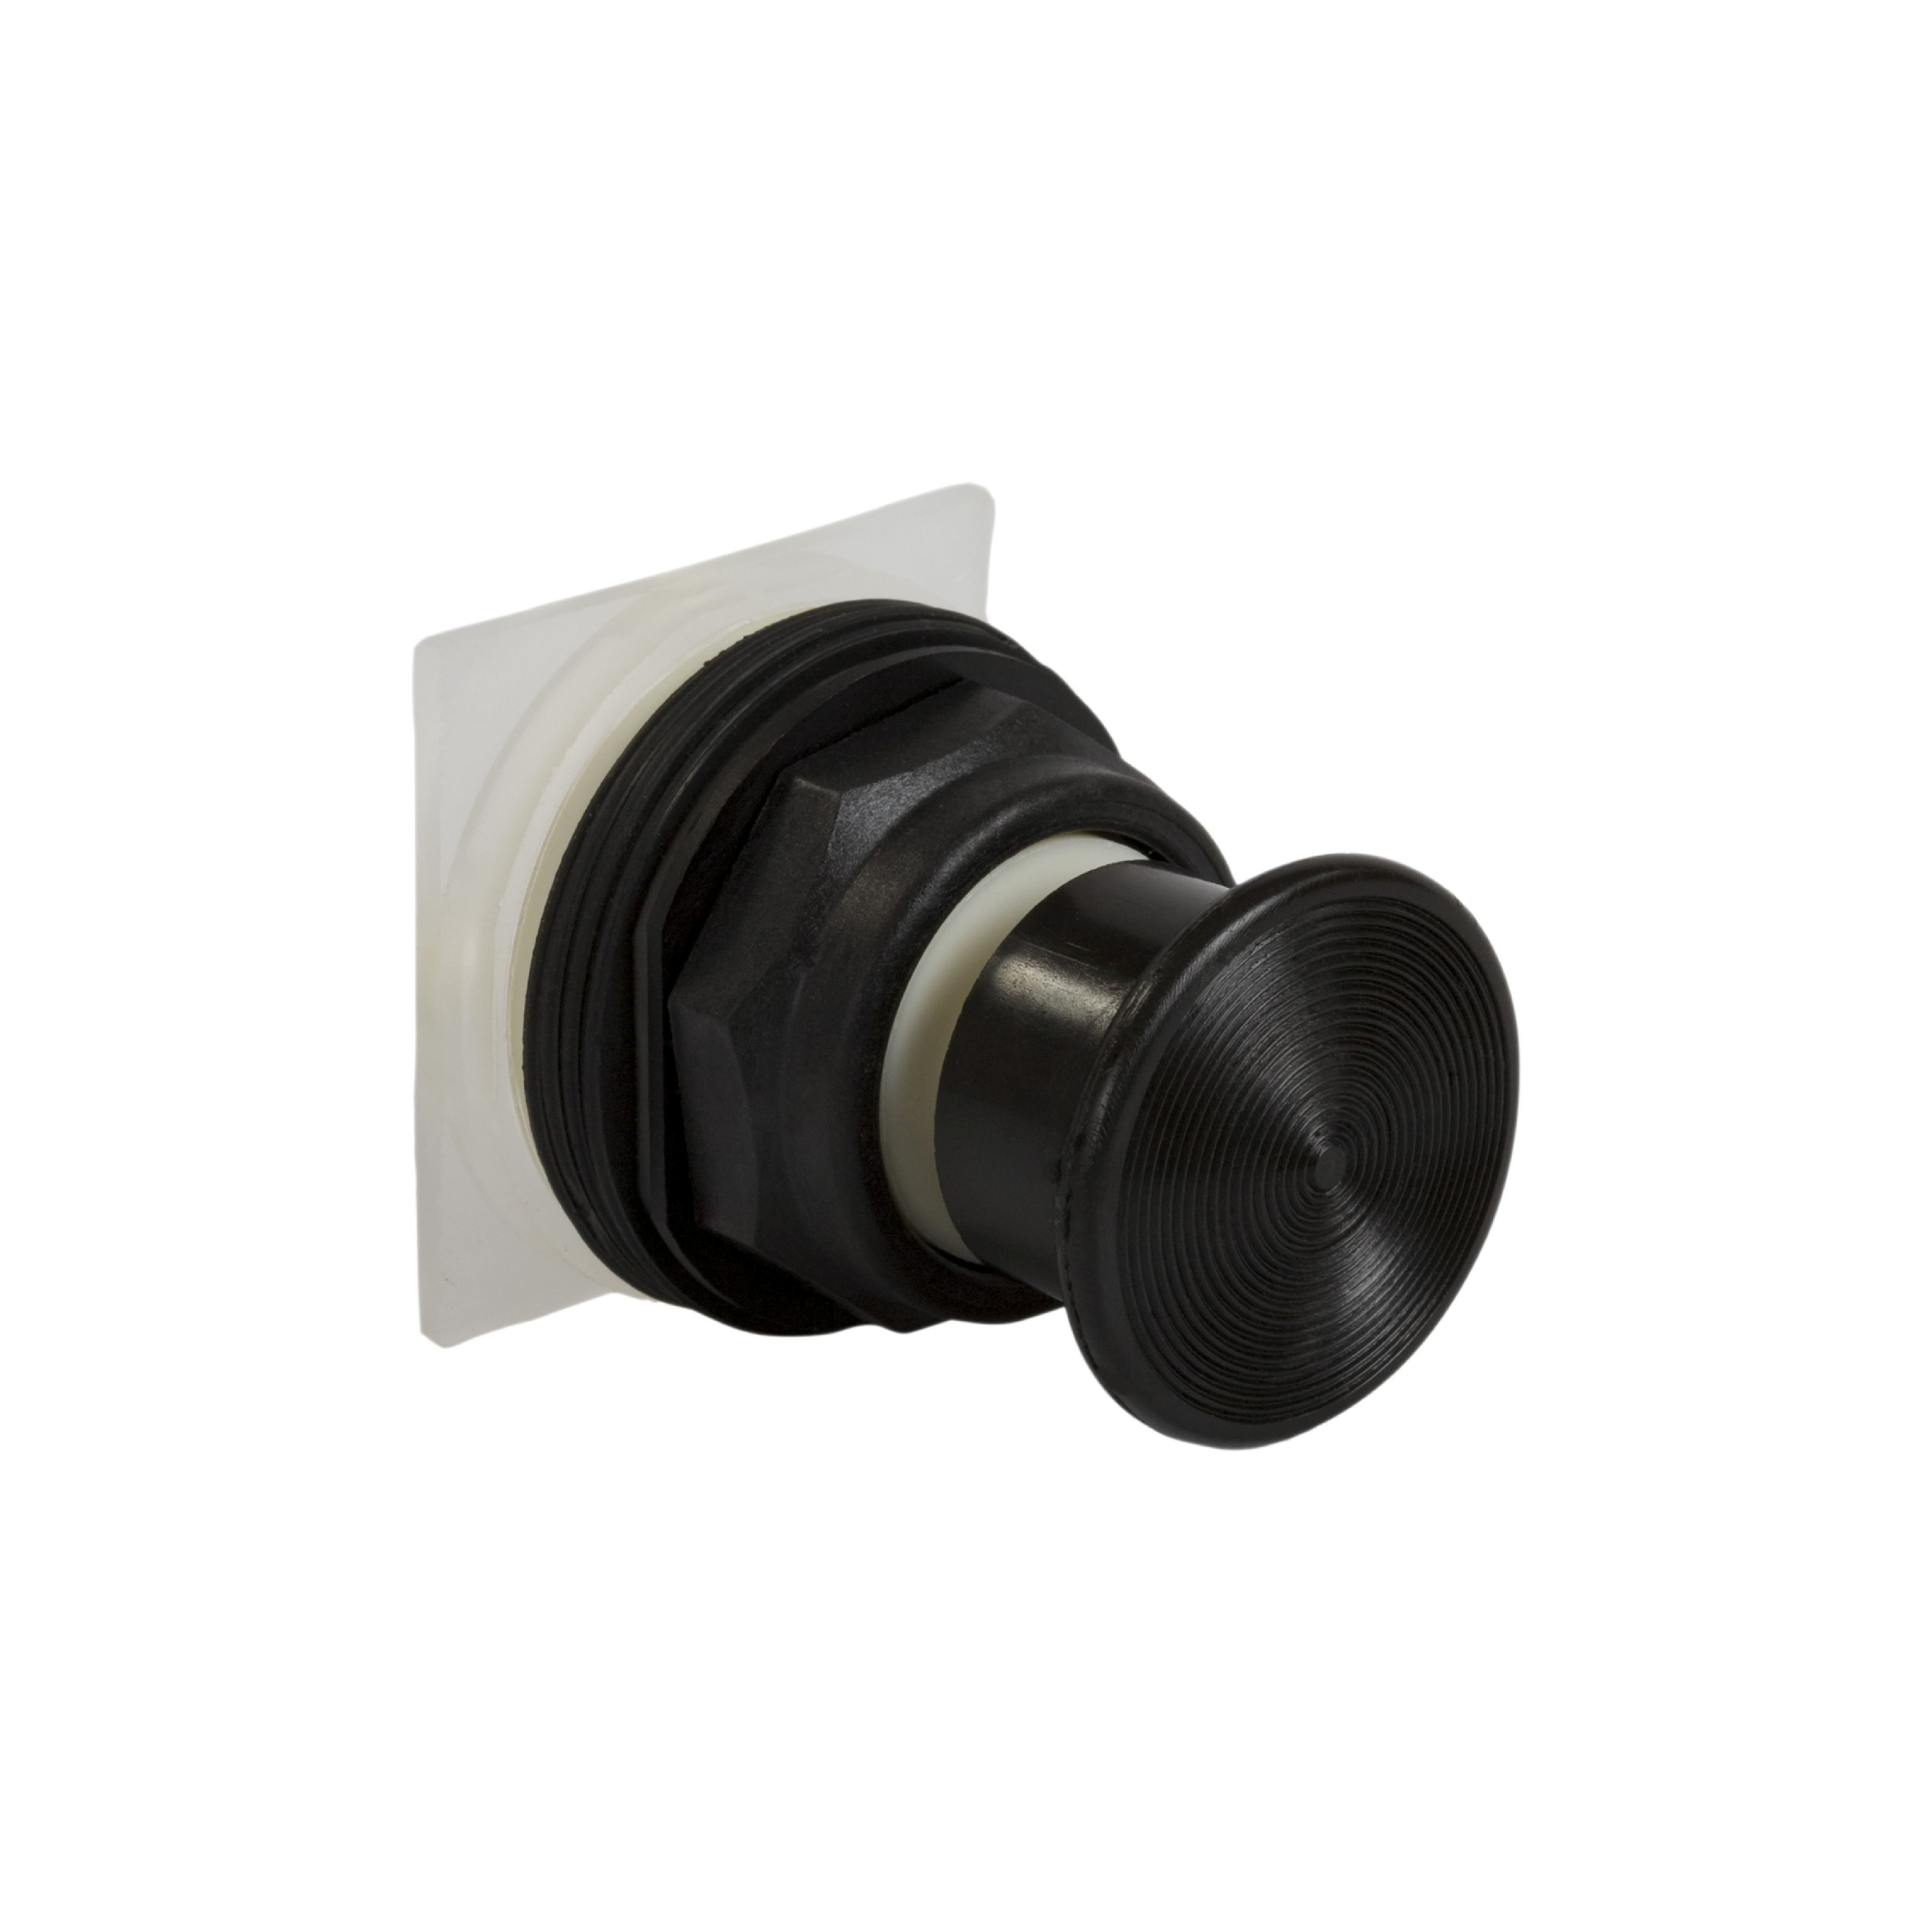 SCHNEIDER ELECTRIC 30MM PUSH BUTTON OPERATOR WITHOUT KNOB